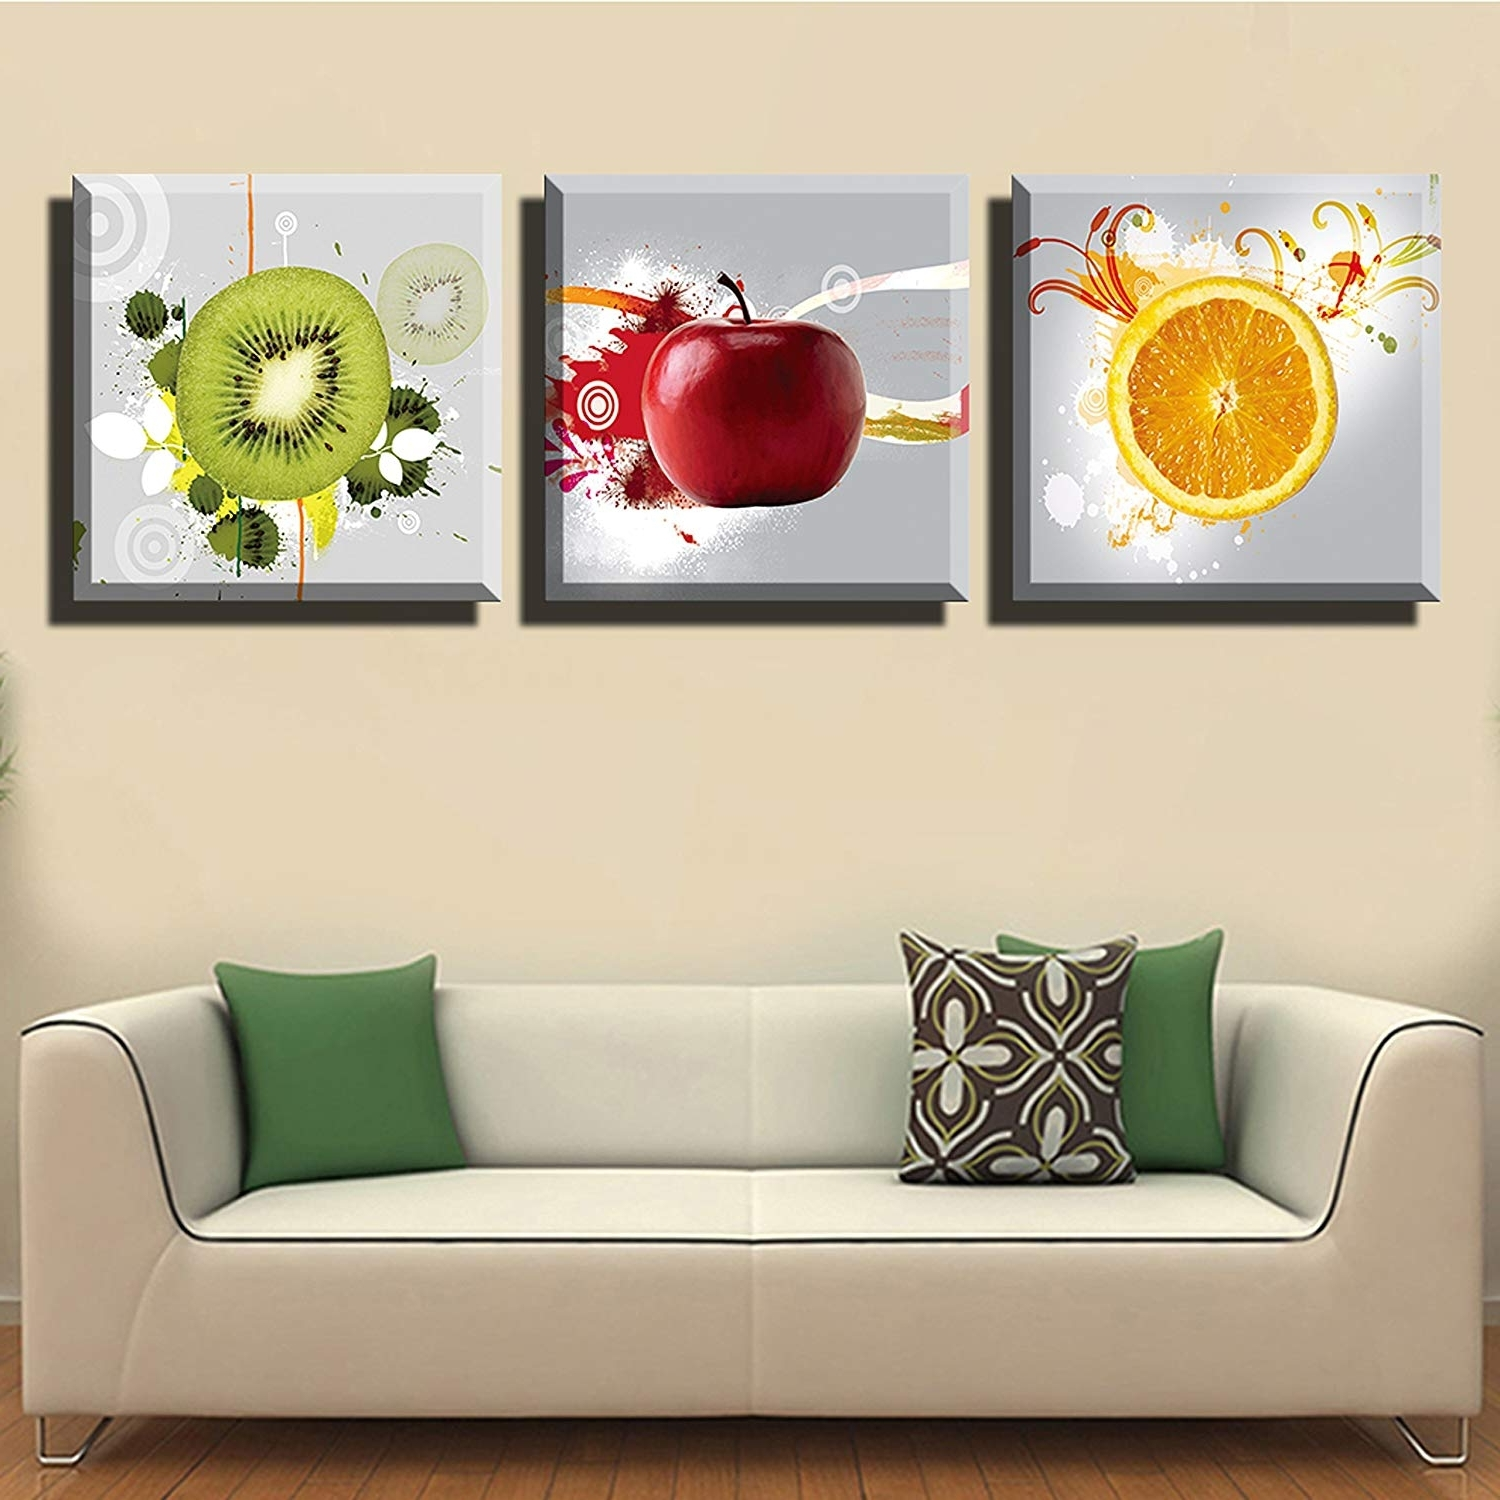 Wall Art Canvas Pertaining To Fashionable Amazon: Lyglo Canvas Prints – Bright And Vibrant Fruit Canvas (View 12 of 15)